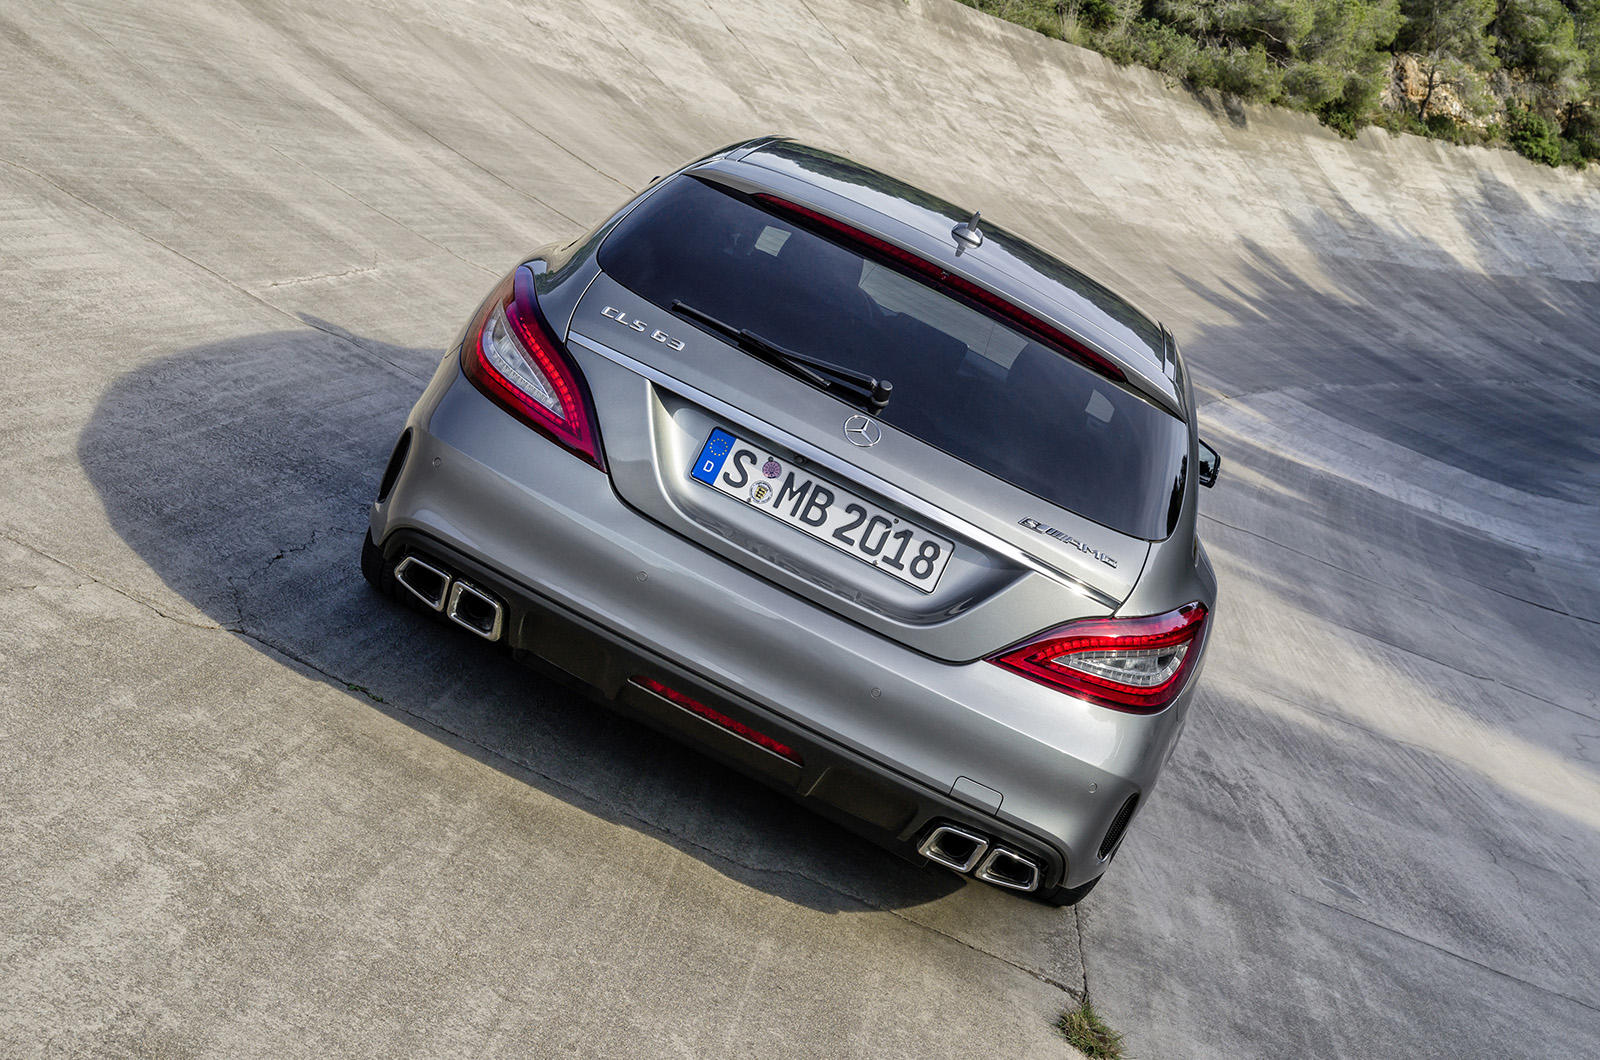 Mercedes CLS Facelift - Mercedes CLS Facelift